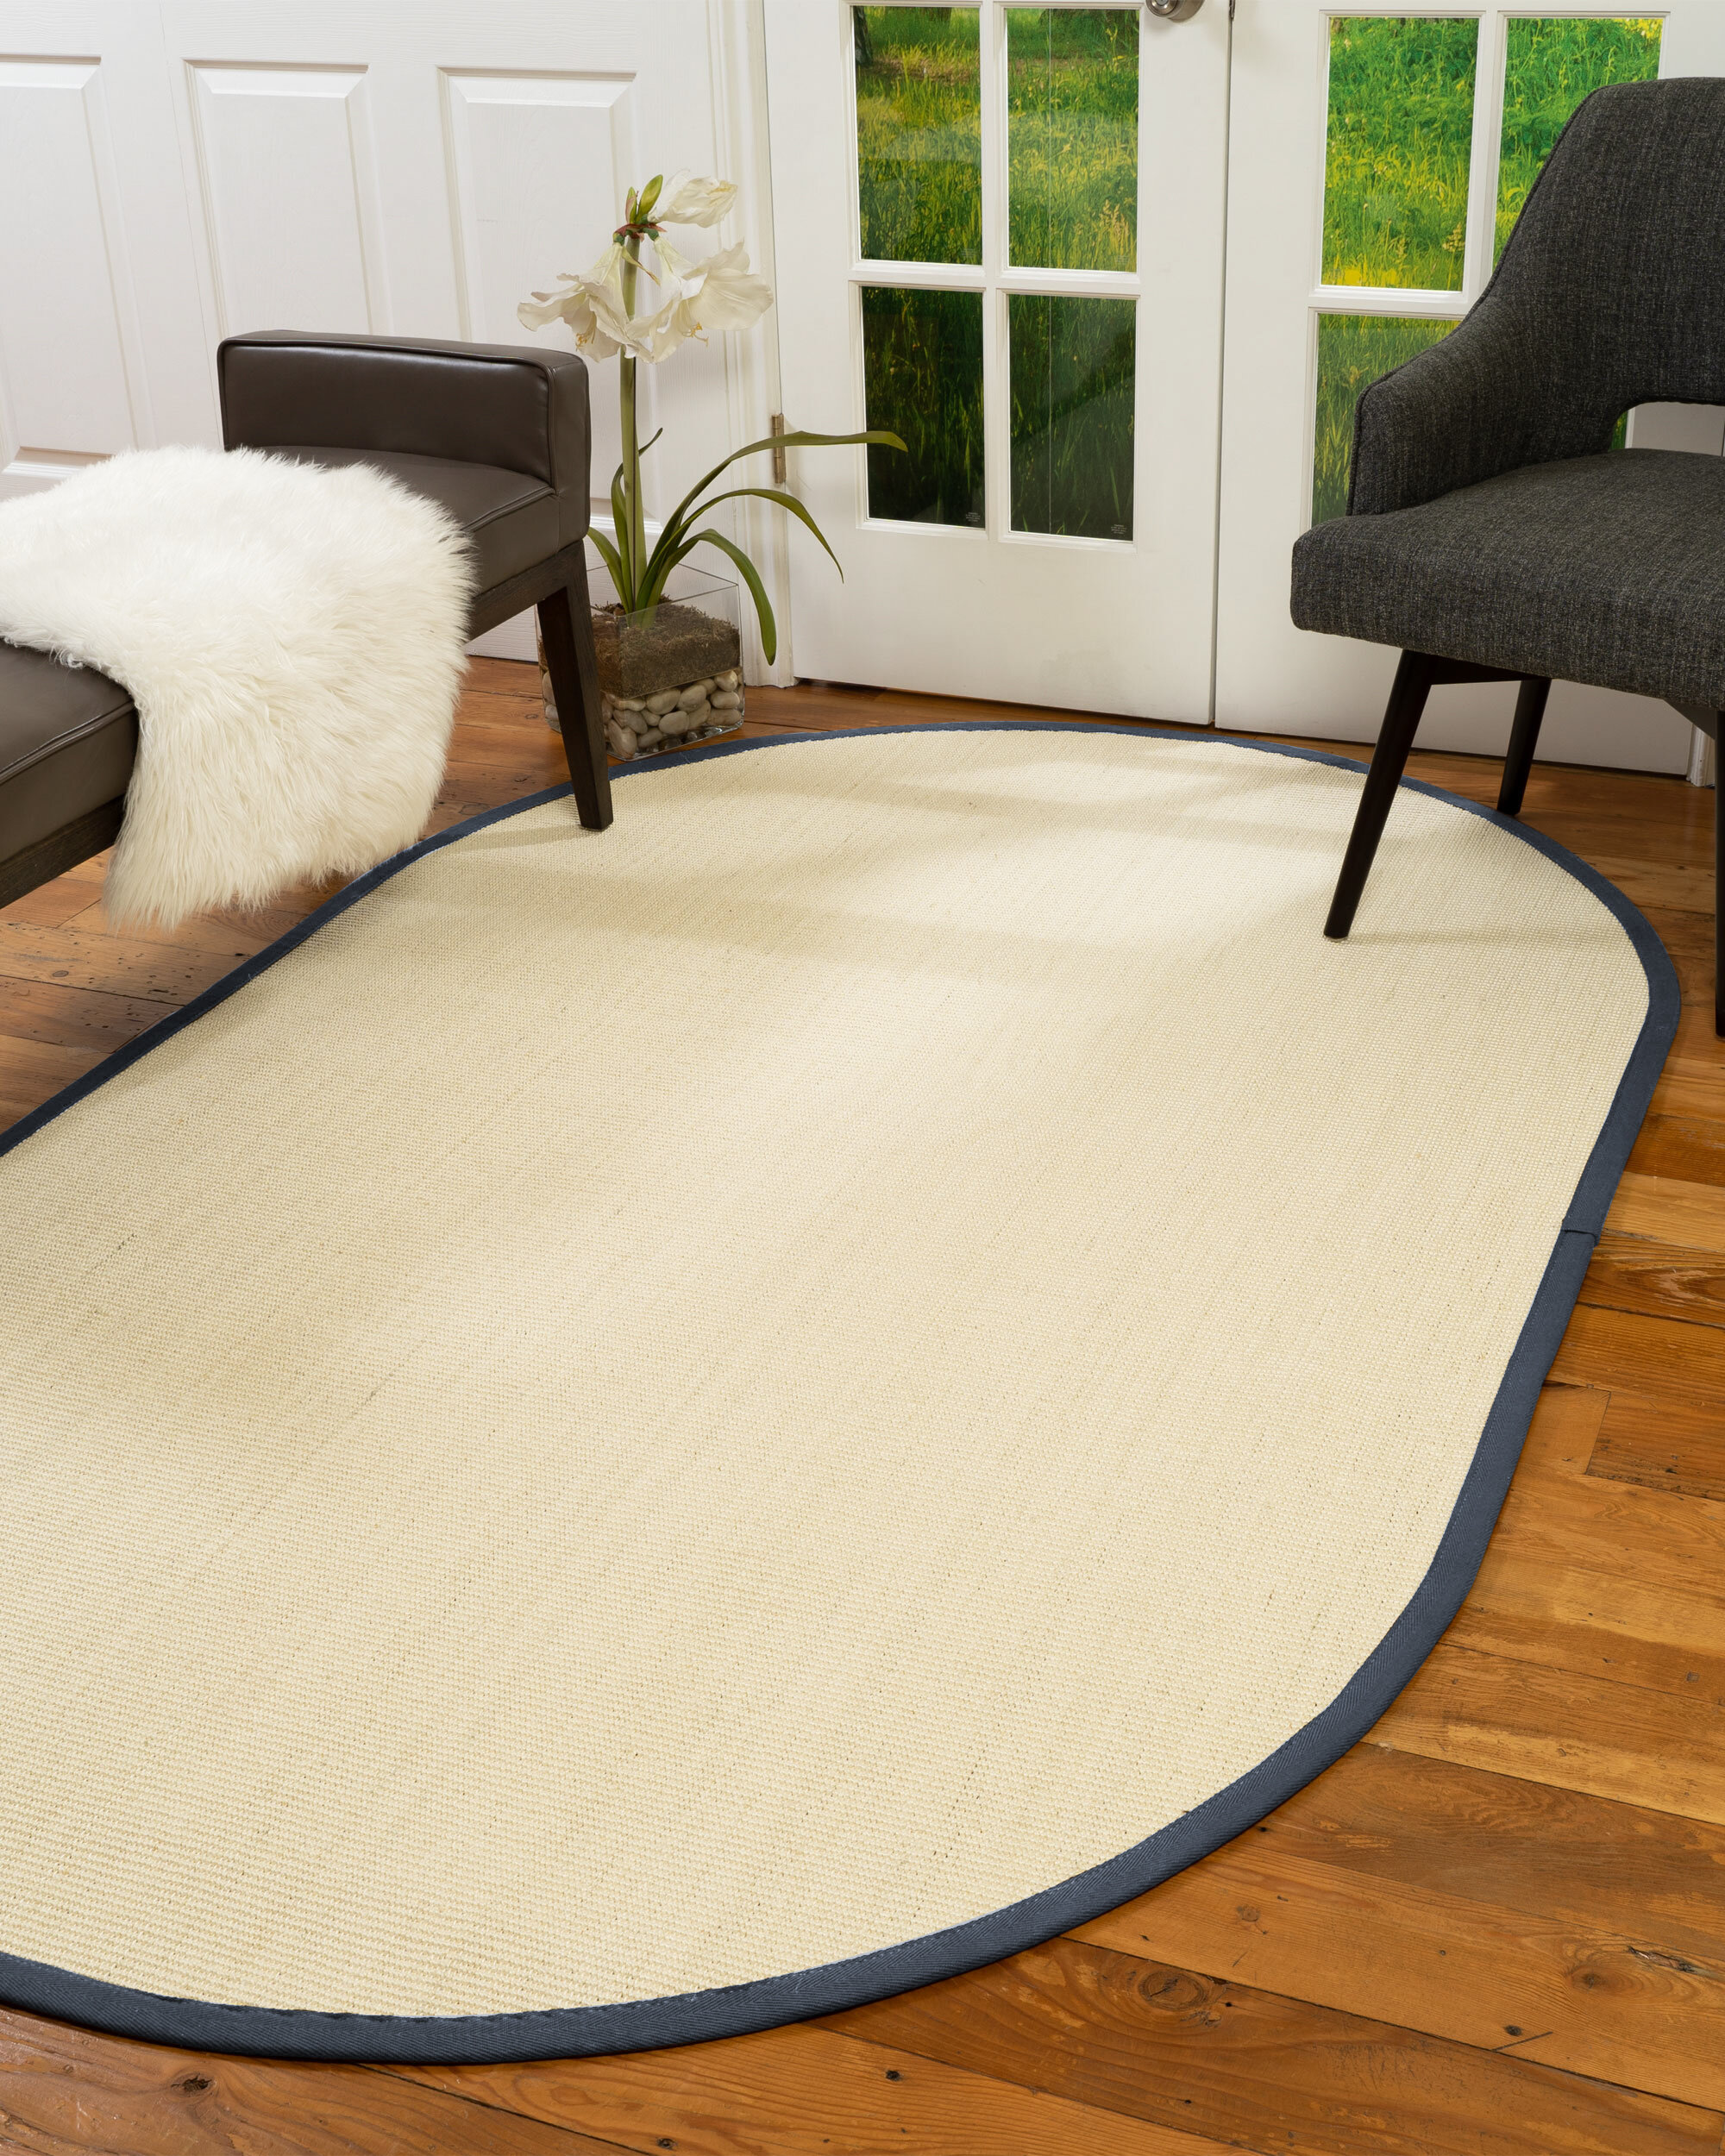 Knotted Octagon Area Rugs You Ll Love In 2021 Wayfair